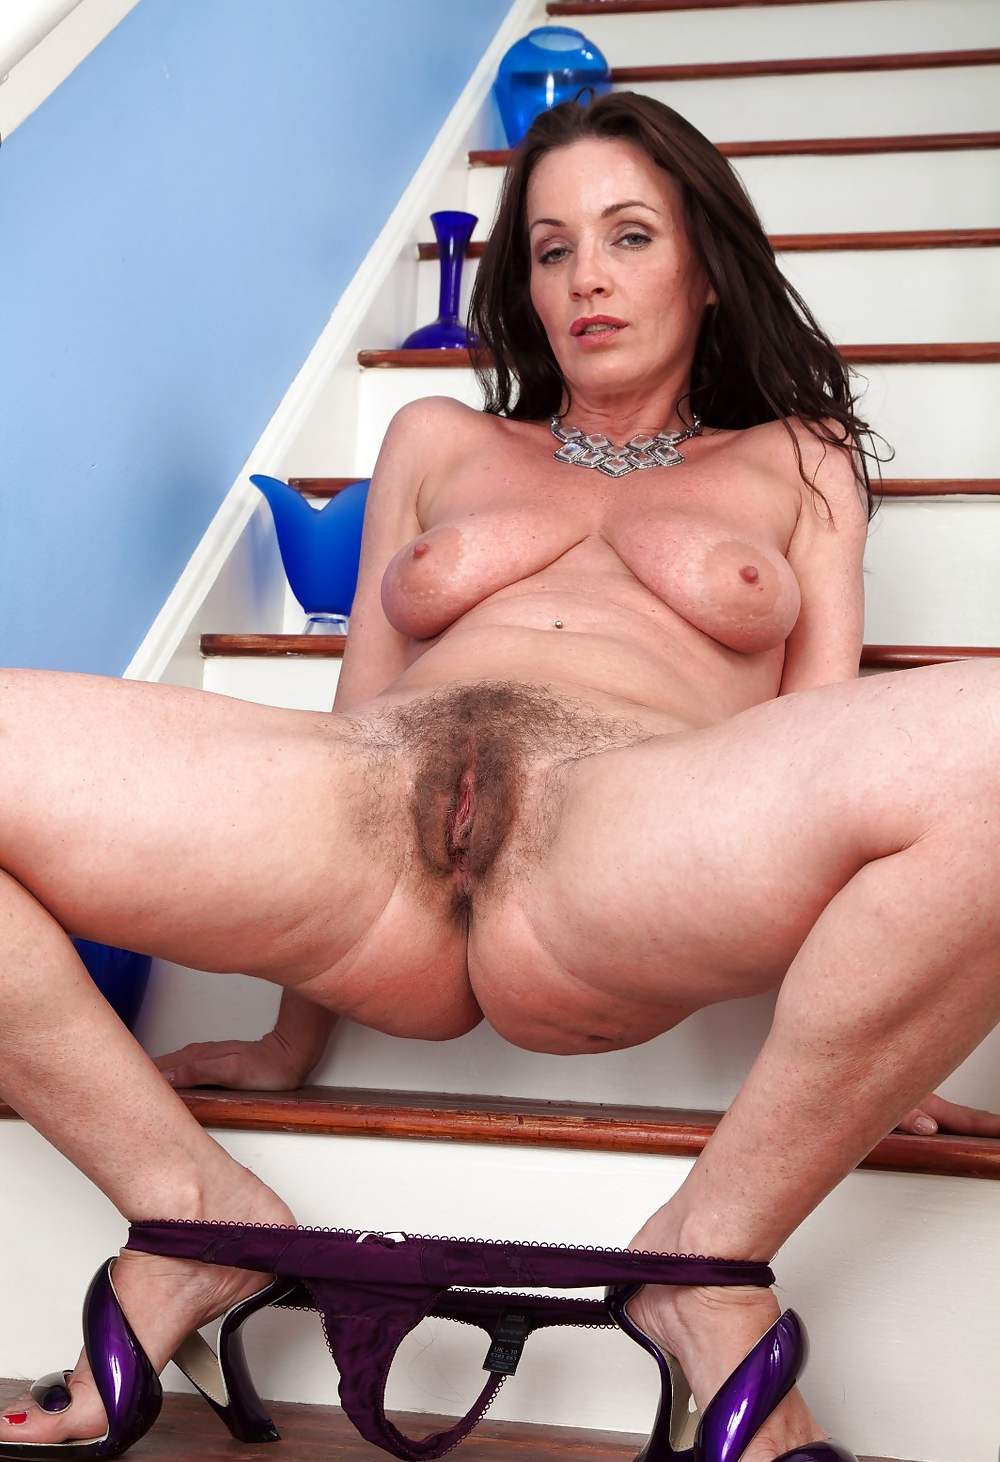 Moms hairy beautiful snatch, fuck chinese wench